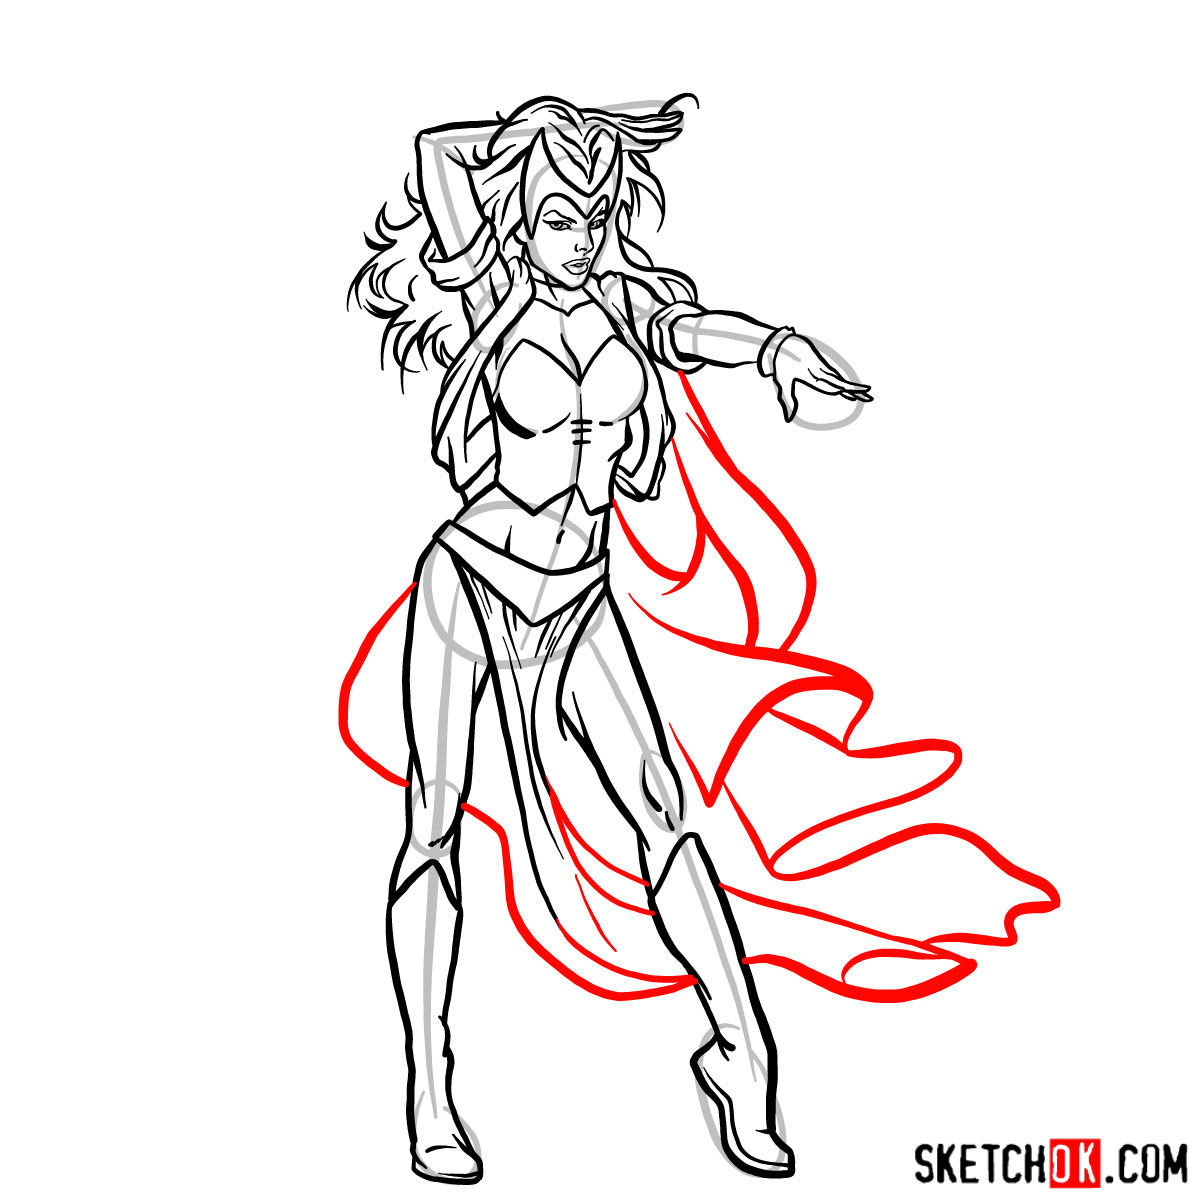 How to draw Scarlet Witch from Marvel Comics - step 14